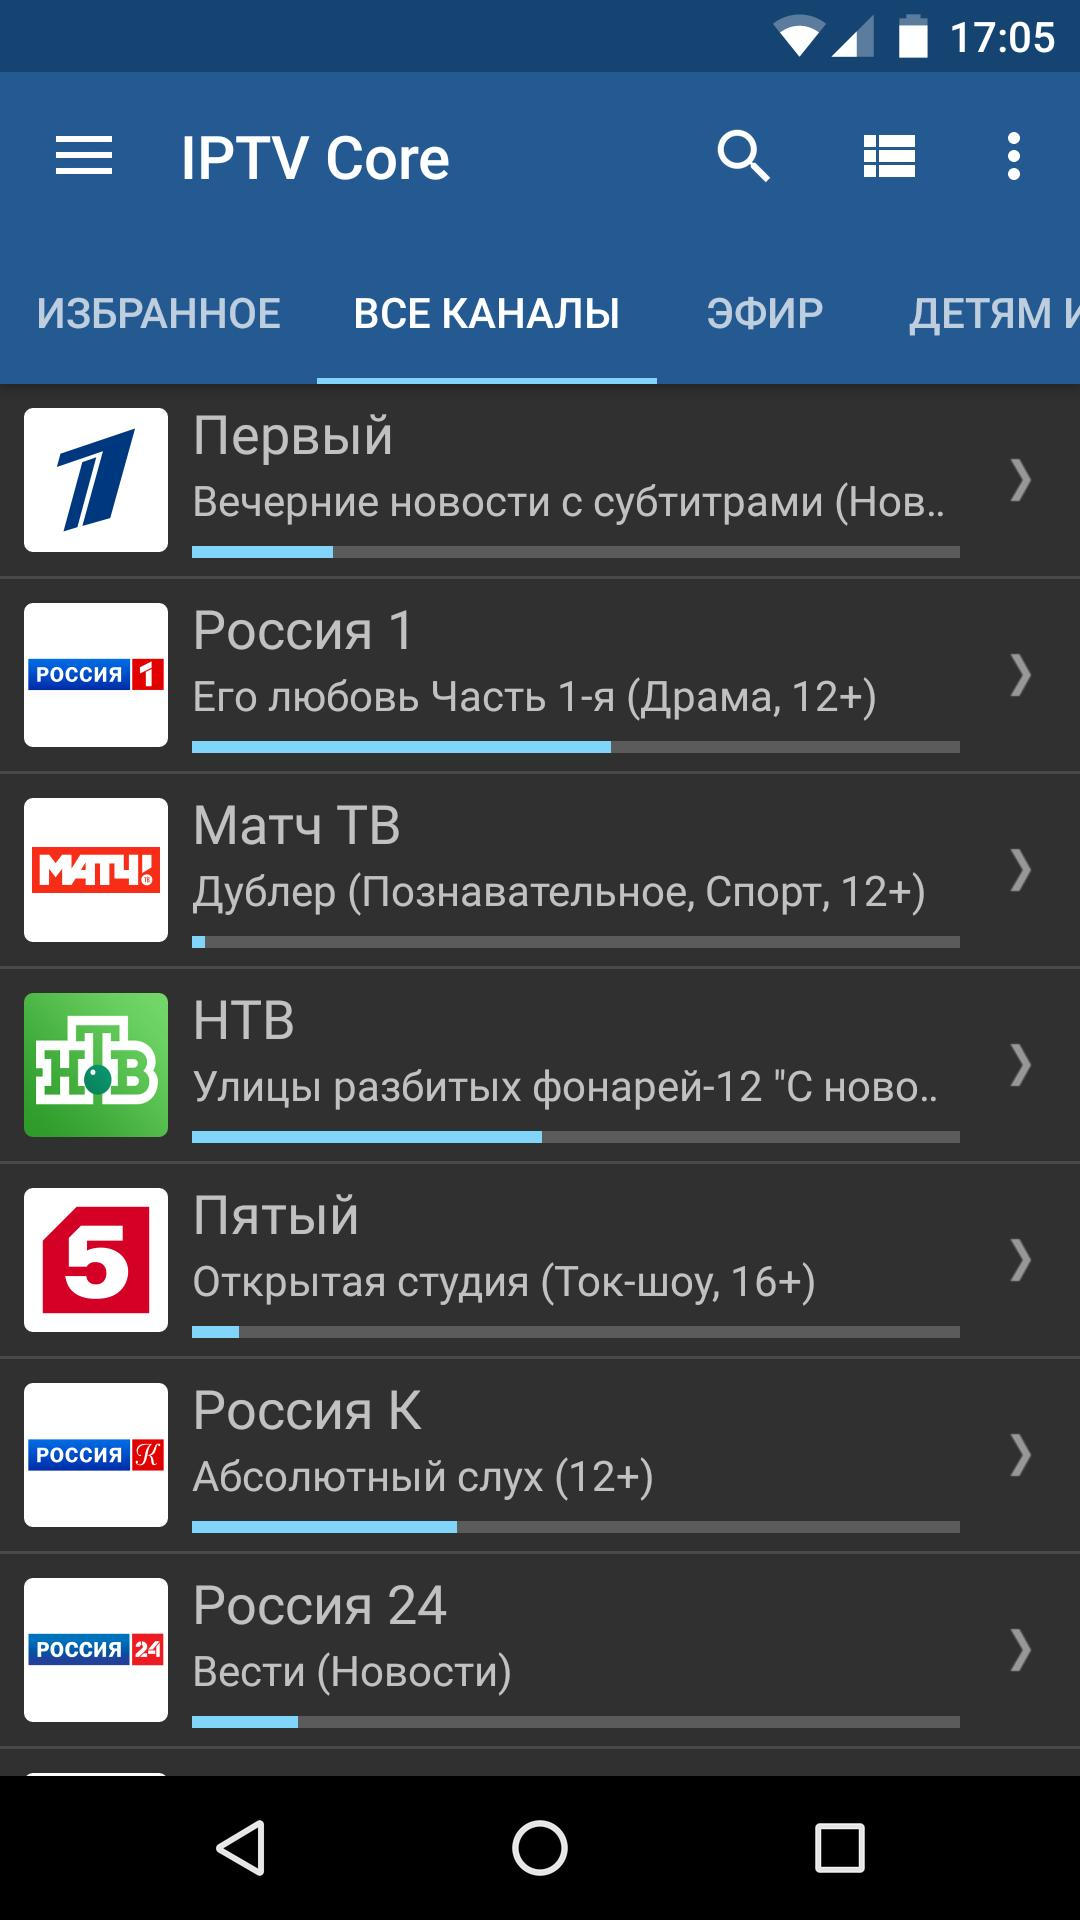 IPTV Core for Android - APK Download